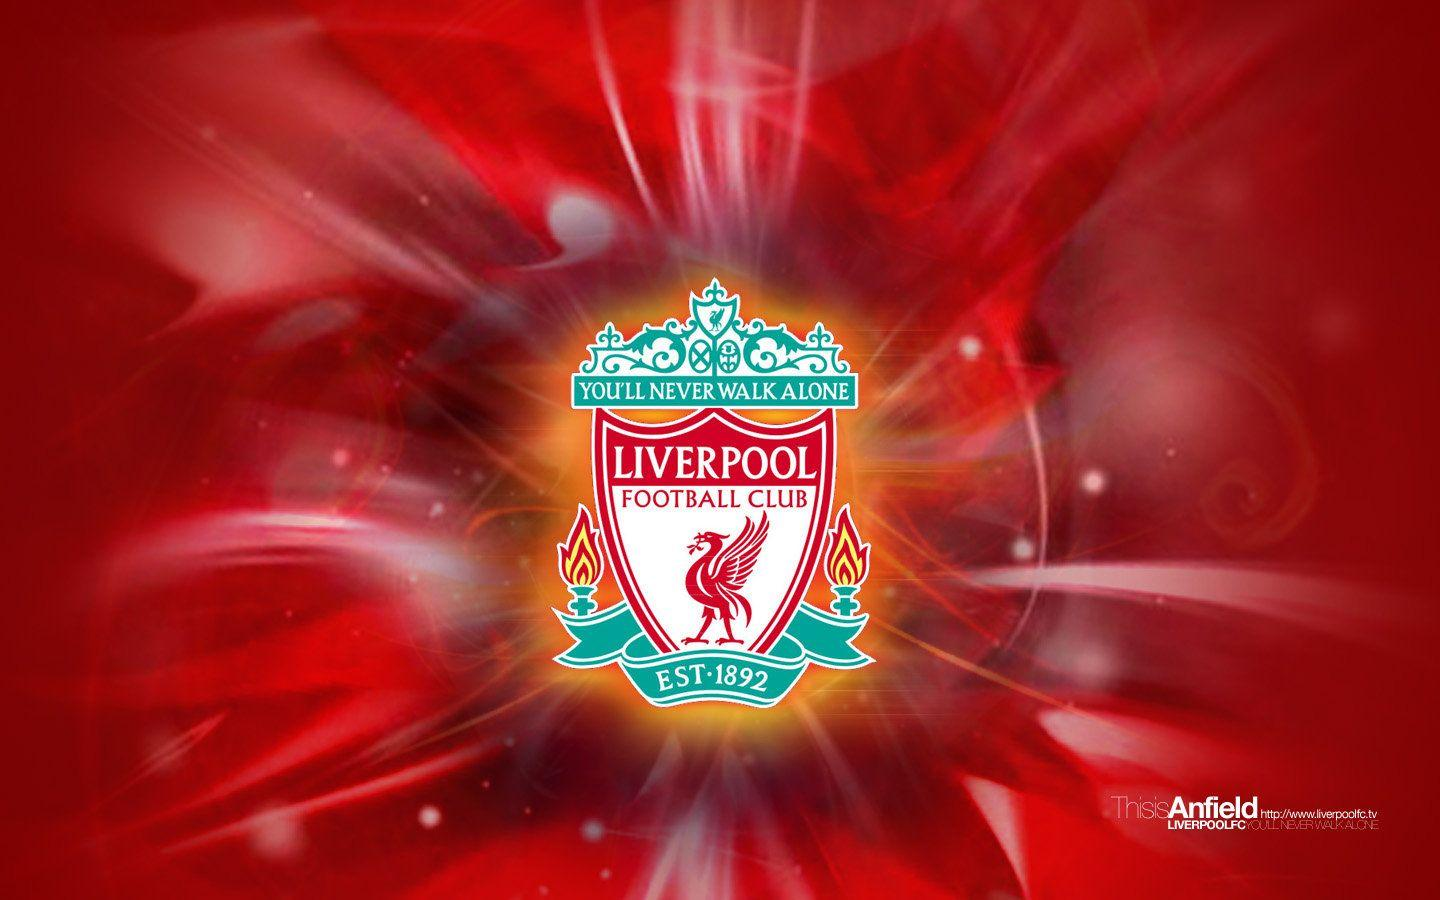 Liverpool 2018 Wallpapers - Wallpaper Cave